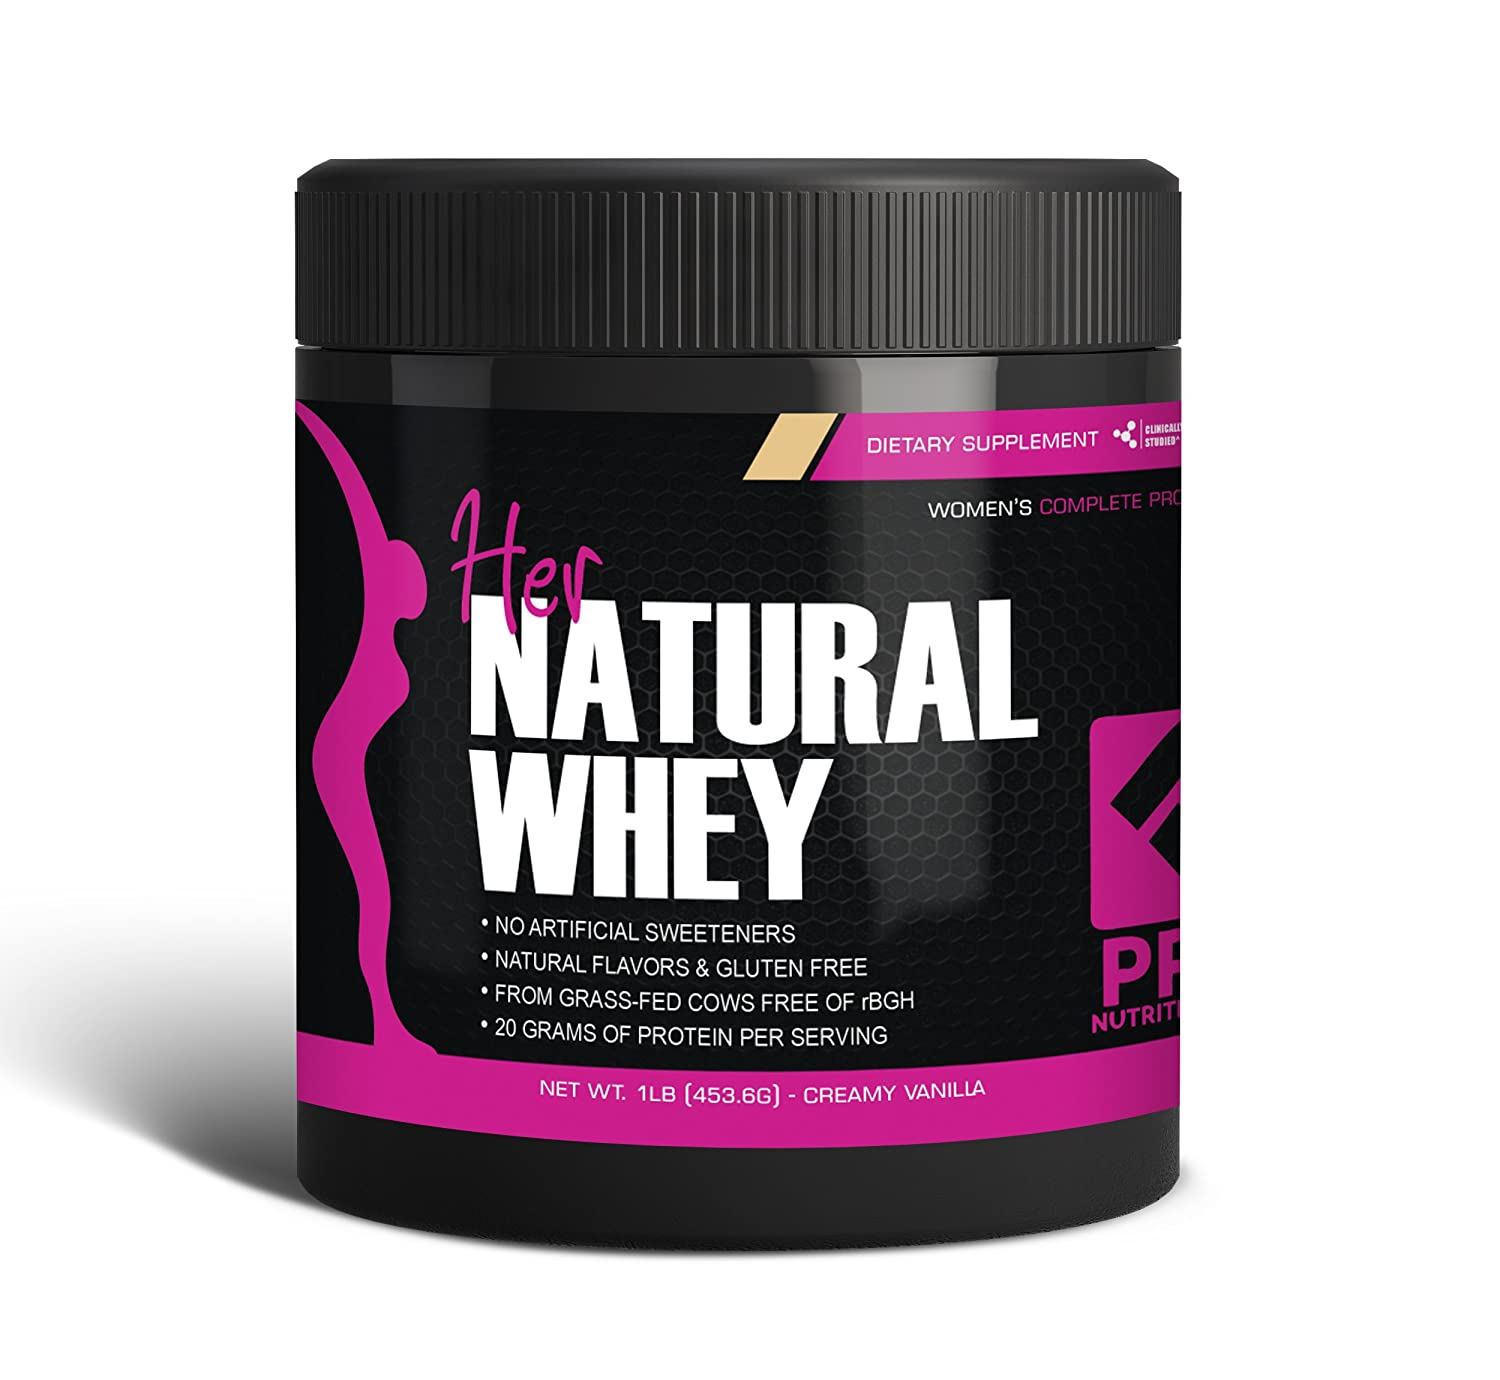 大きな割引 Protein Powder For Women - Her Her Weight Natural - Whey Protein Powder For Weight Loss & To Support Lean Muscle Mass - Low Carb - Gluten Free - rBGH Hormone Free - Naturally Sweetened with Stevia - Designed For Optimal Fat Loss (Creamy Vanilla) - Net Wt. 1 LB by Pro Nutrition Labs B00FGZUQNA, メンズファッション通販 LEADMEN:360e63ff --- arianechie.dominiotemporario.com